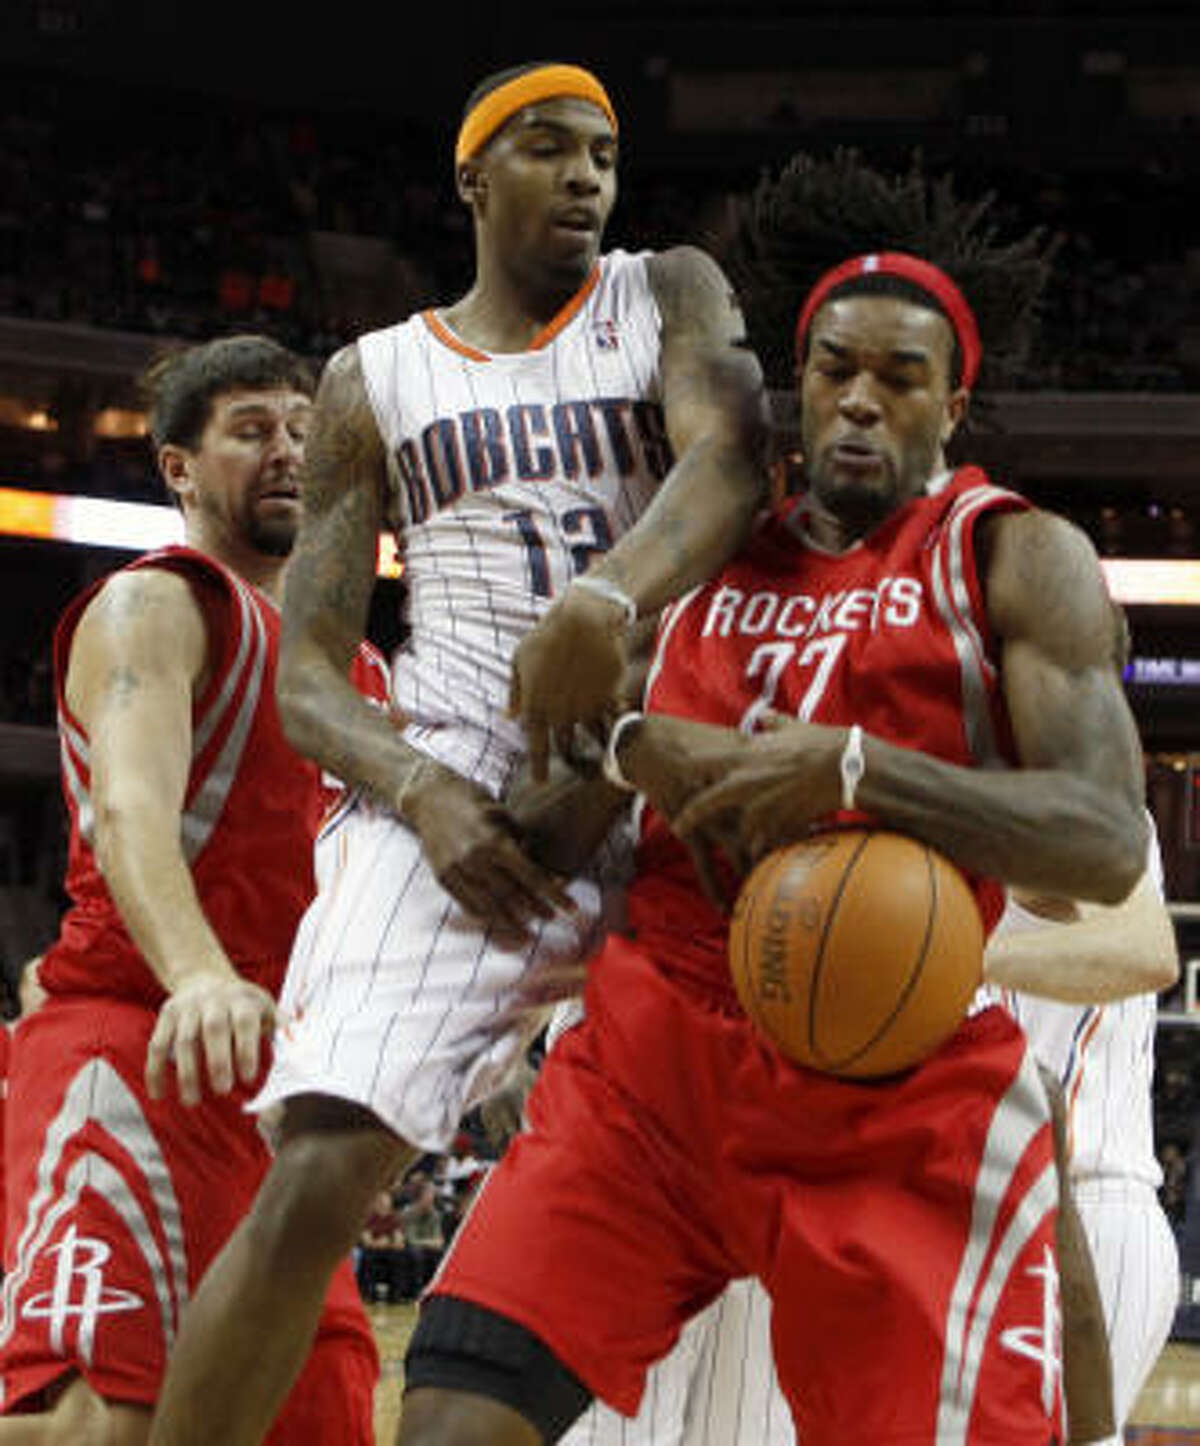 Rockets forward Jordan Hill (27) and Bobcats forward Tyrus Thomas (12) fight for control of a rebound as Rockets center Brad Miller, back left, tries to assist.